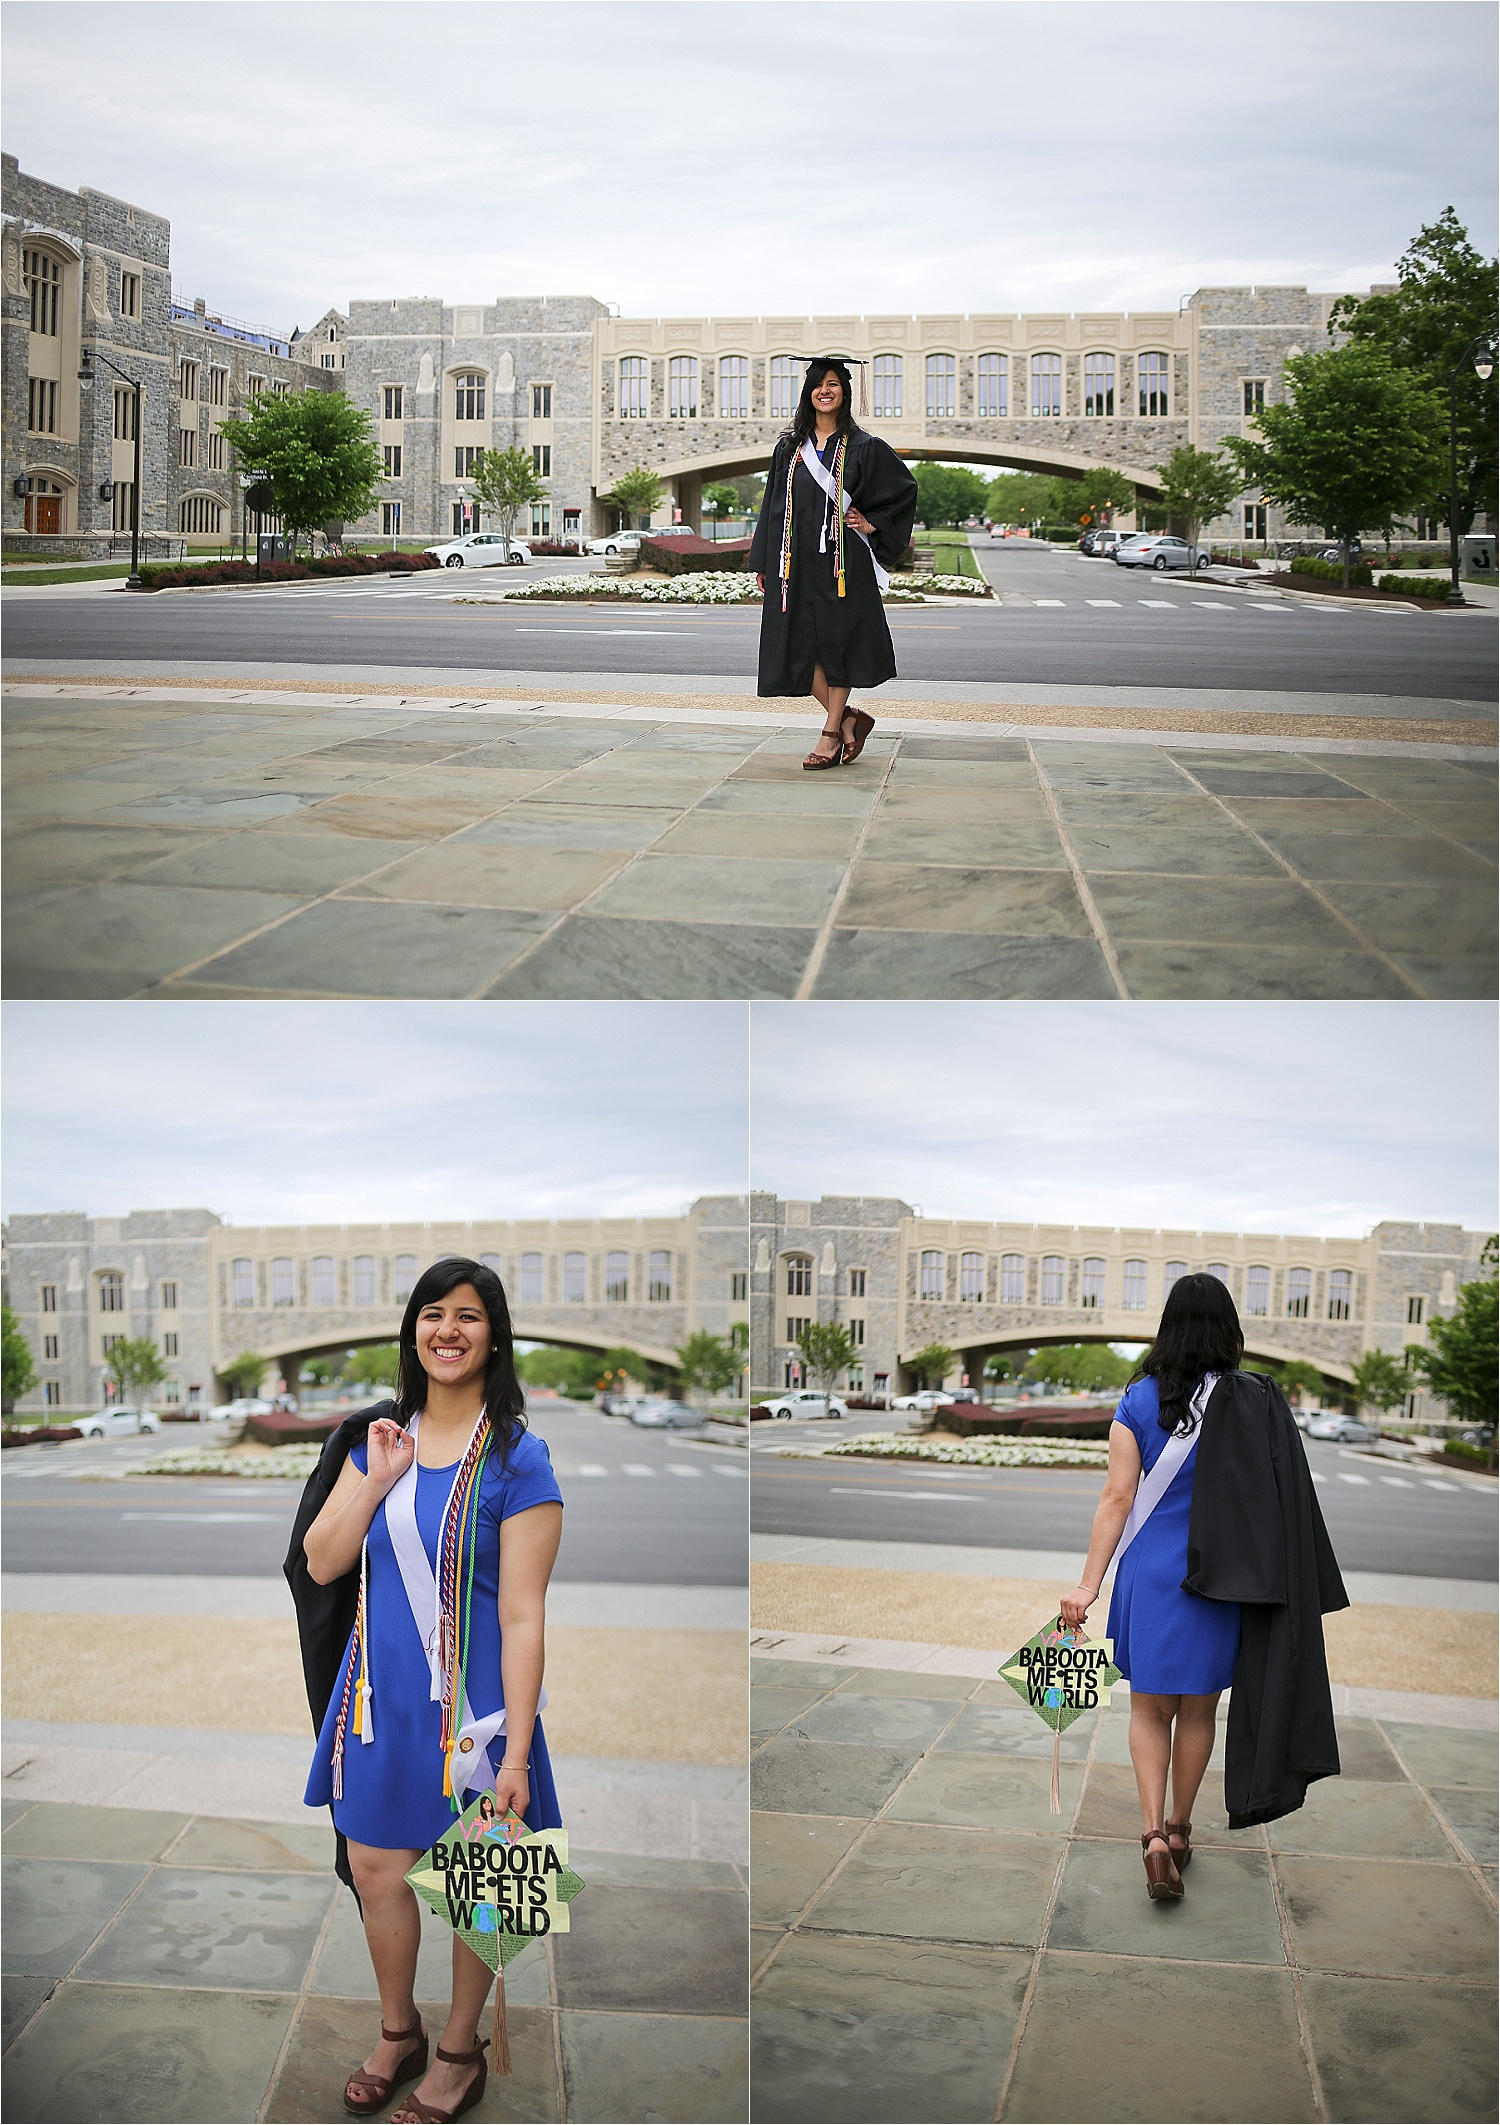 Blacksburg-Virginia-Tech-Senior-Portrait-Graduation-Photographer-_0005.jpg